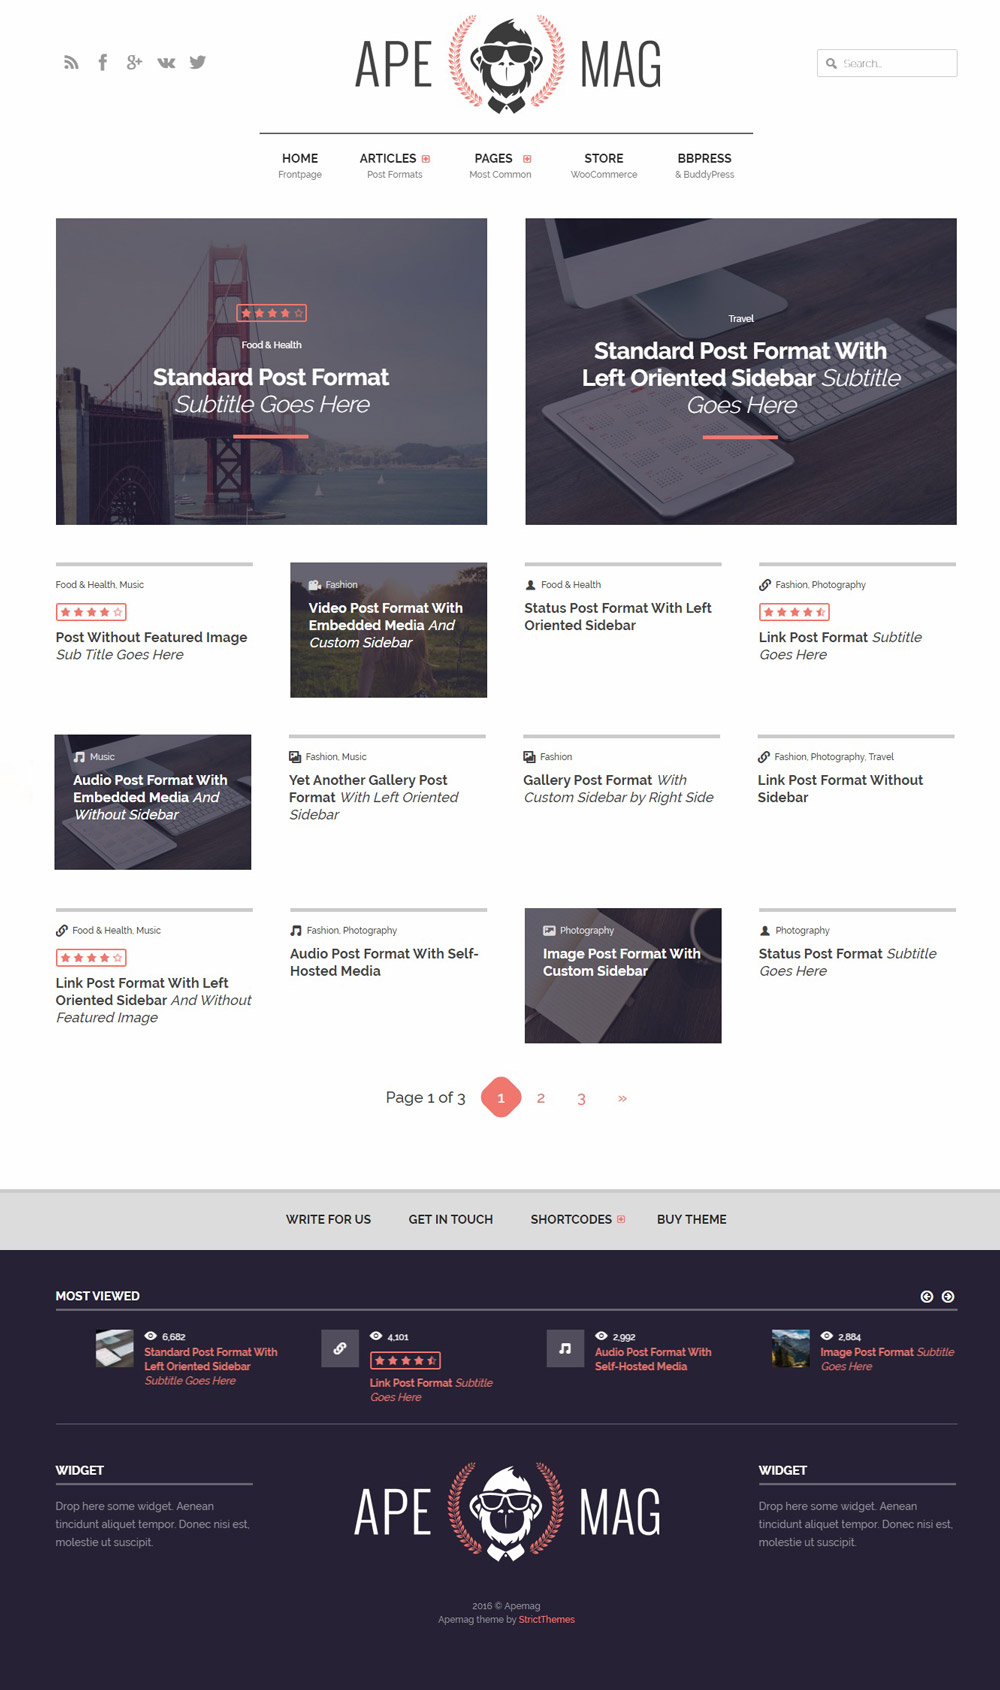 Apemag - Stylish WordPress Theme Adsense Optimized